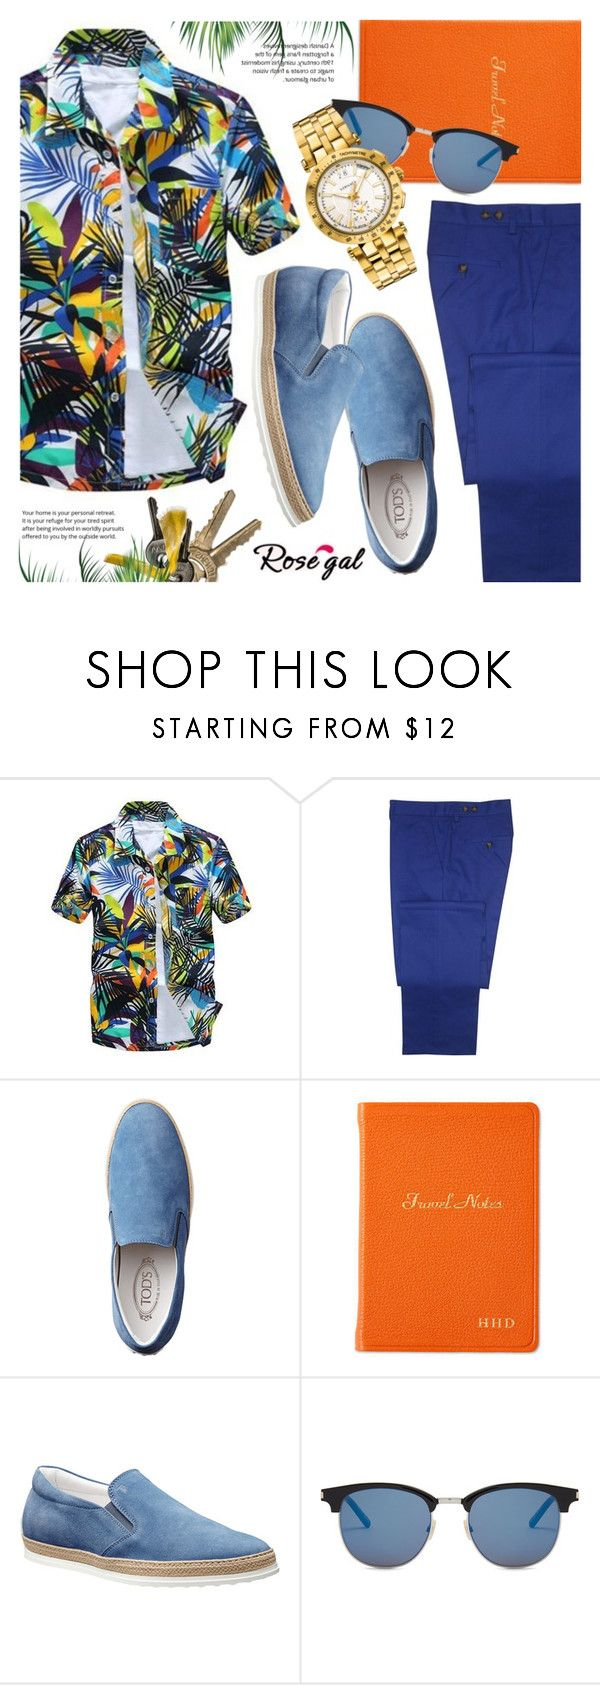 """Rosegal Hawaiian shirt for men"" by vn1ta on Polyvore featuring Gresham Blake, Graphic Image, Yves Saint Laurent, Versace, men's fashion and menswear"